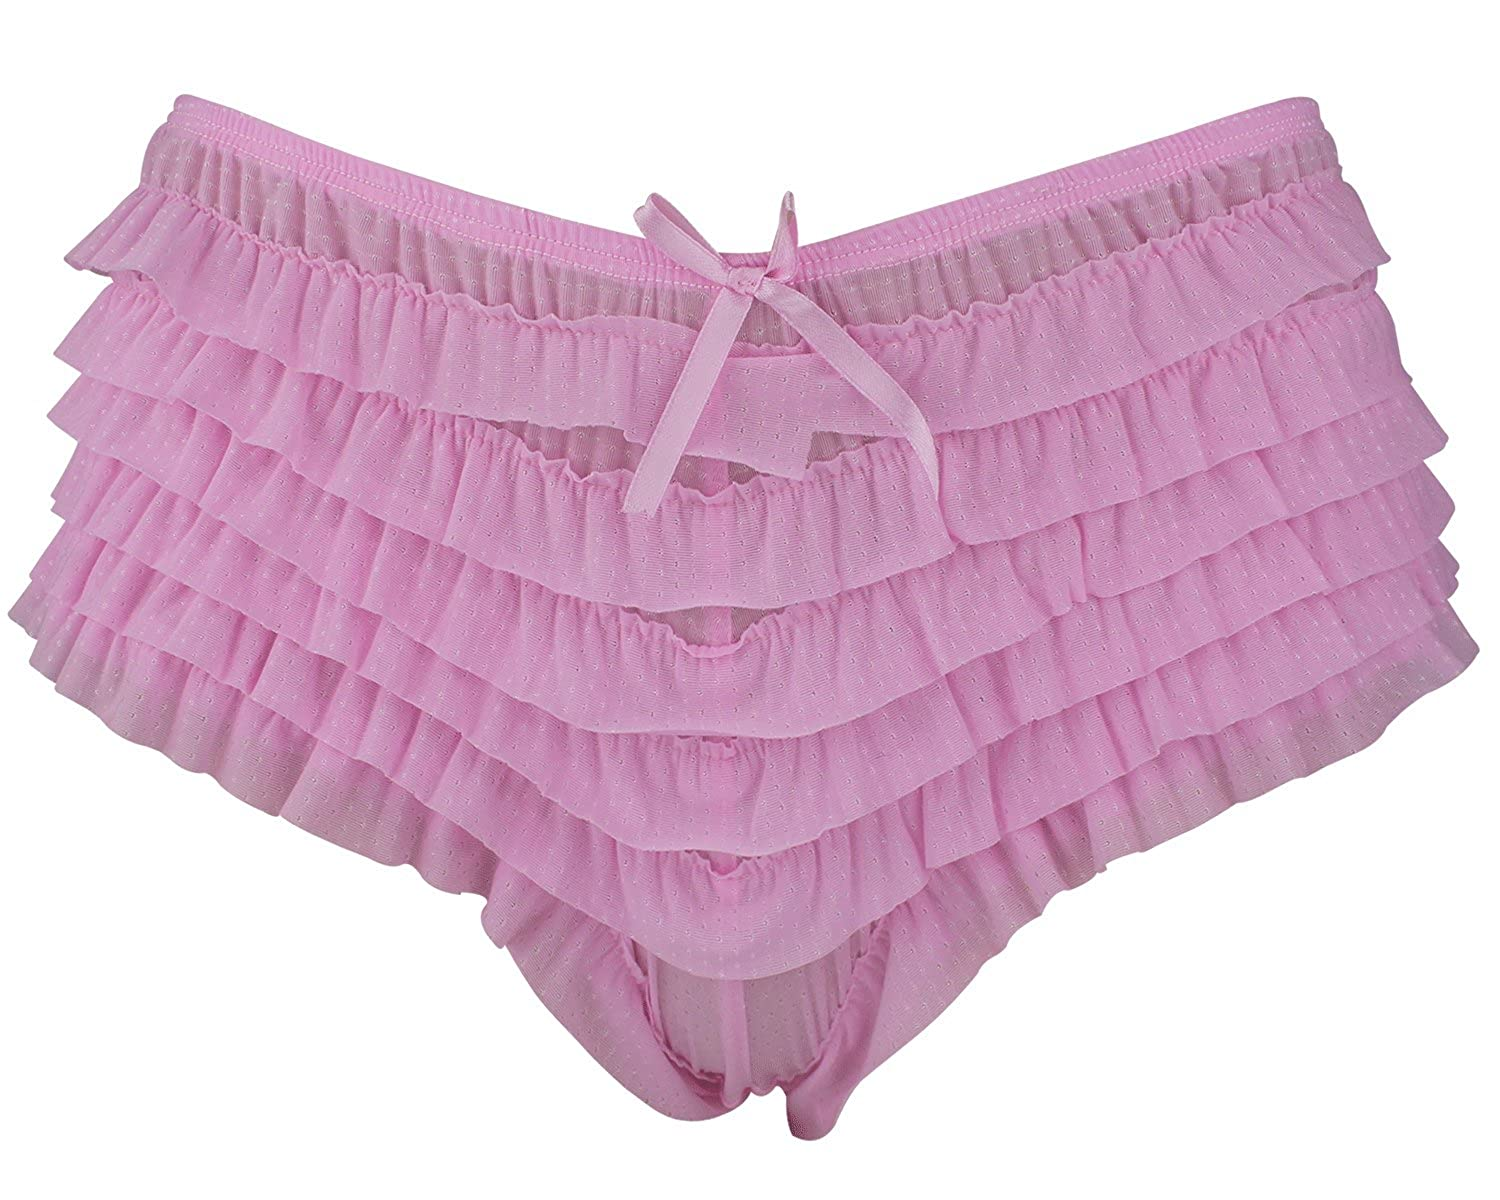 no sale tax best selection of closer at LADIES FRILLY HOT PANTS KNICKERS SHORTS BURLESQUE BRIEFS PANTIE (UK 14,  BABY PINK)